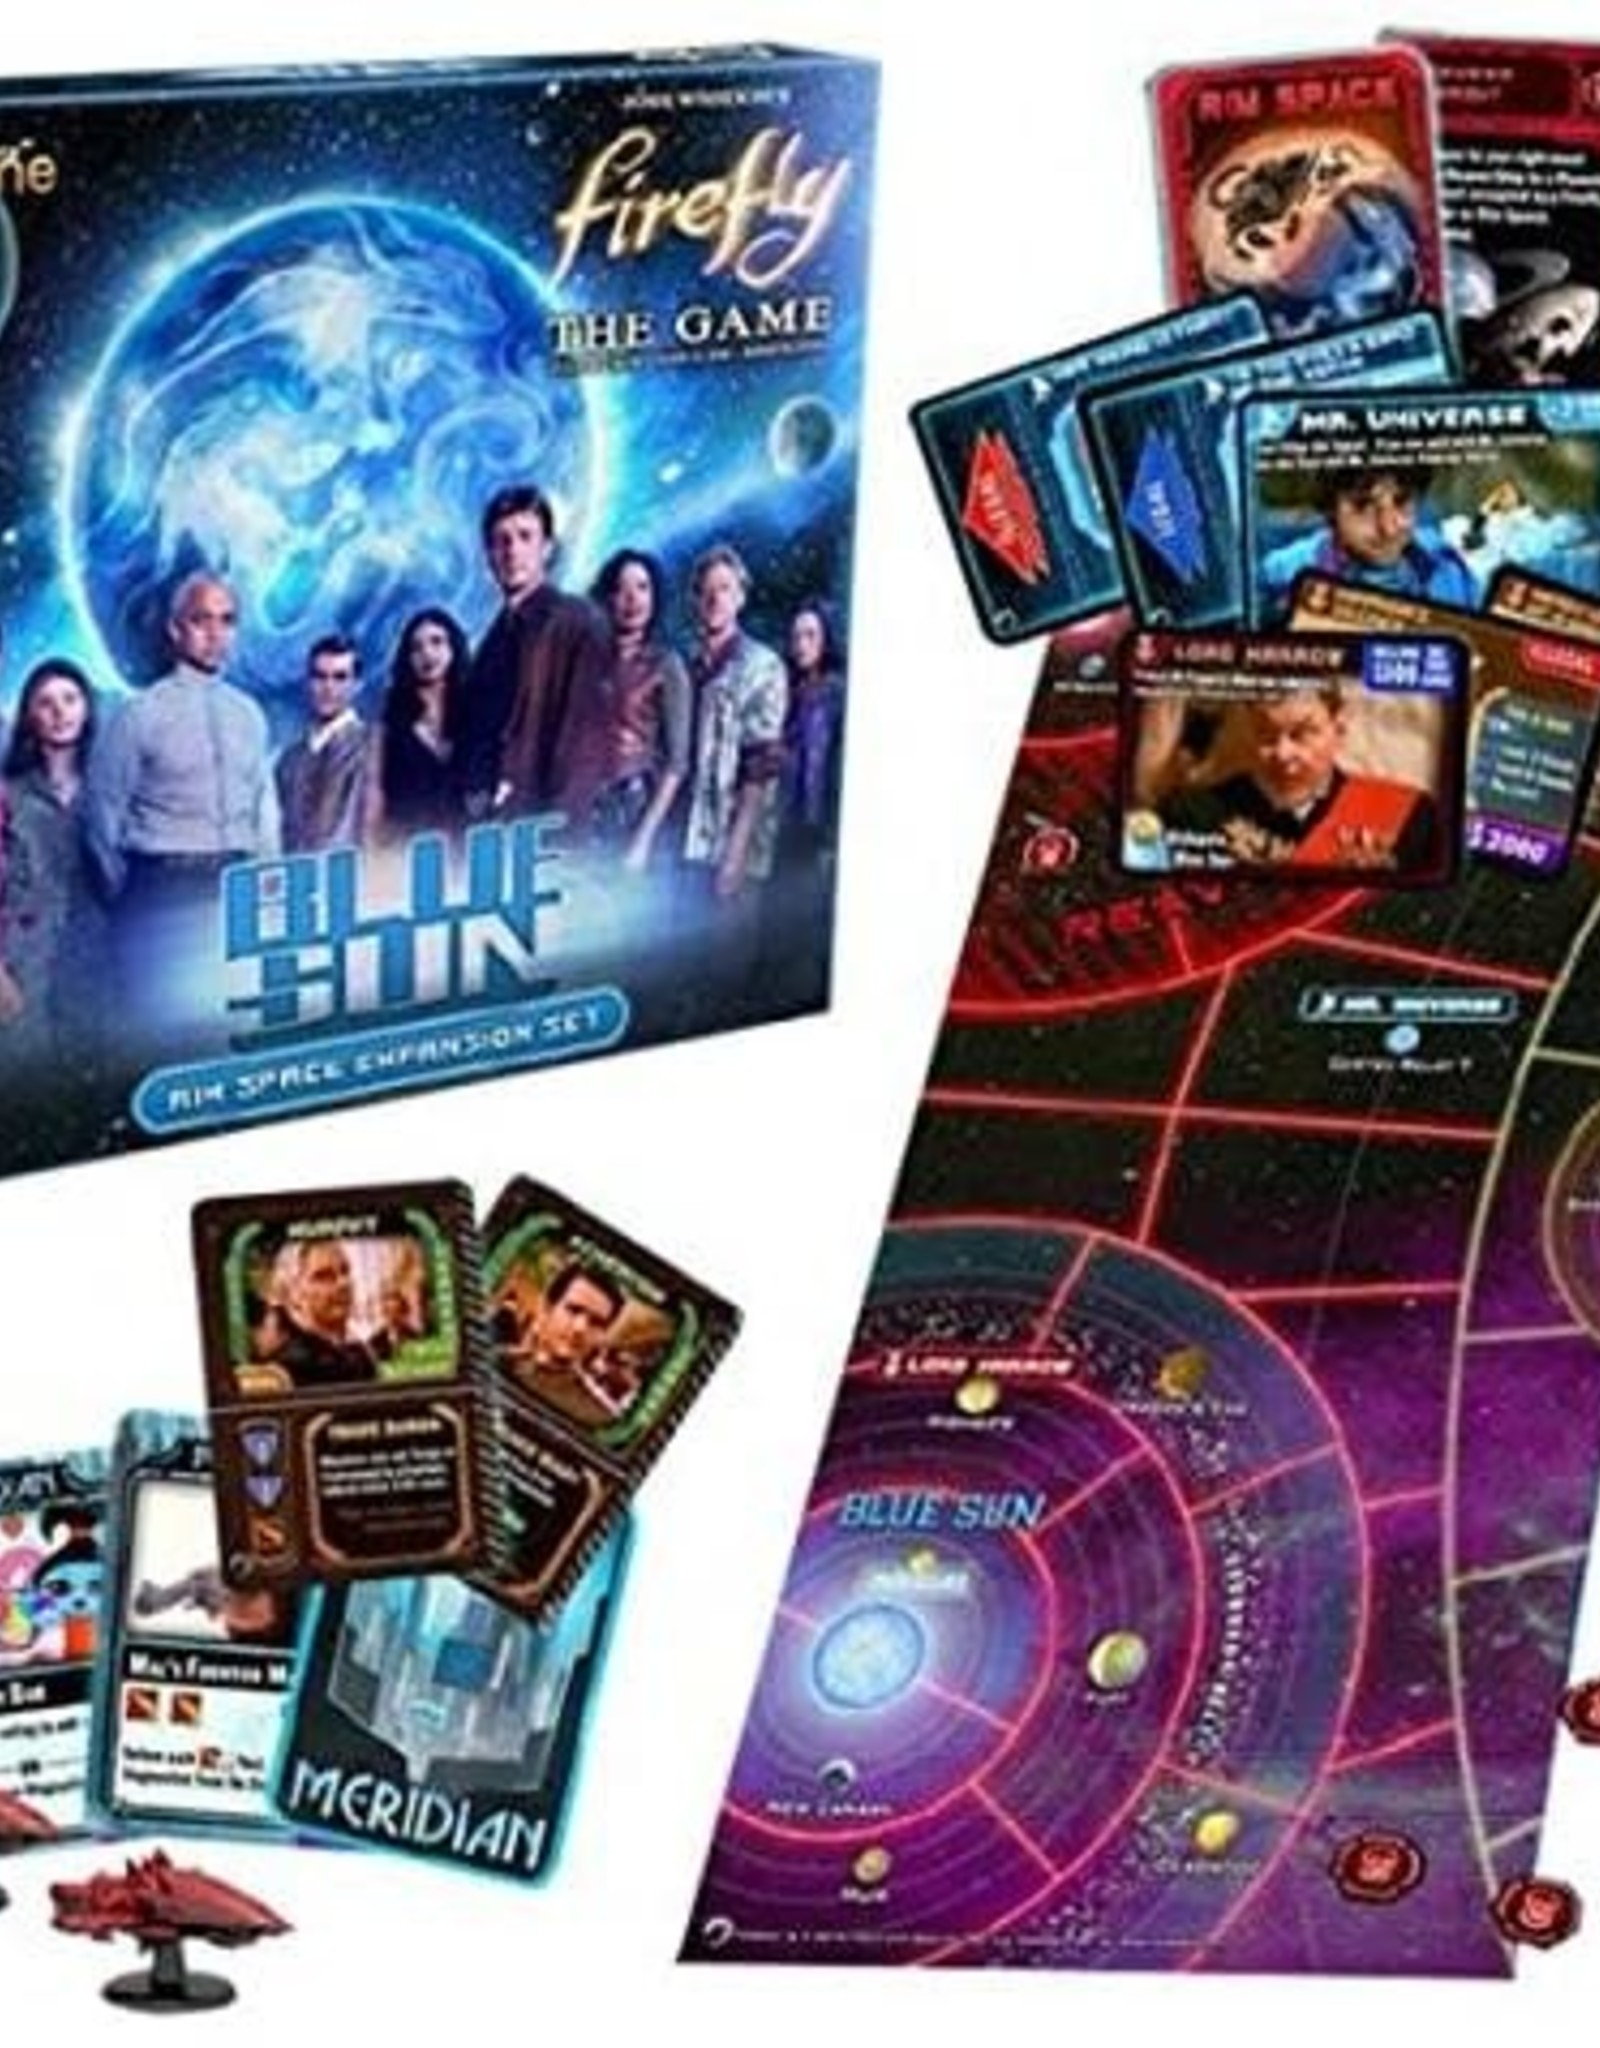 Gale Force 9 Firefly: Blue sun Expansion